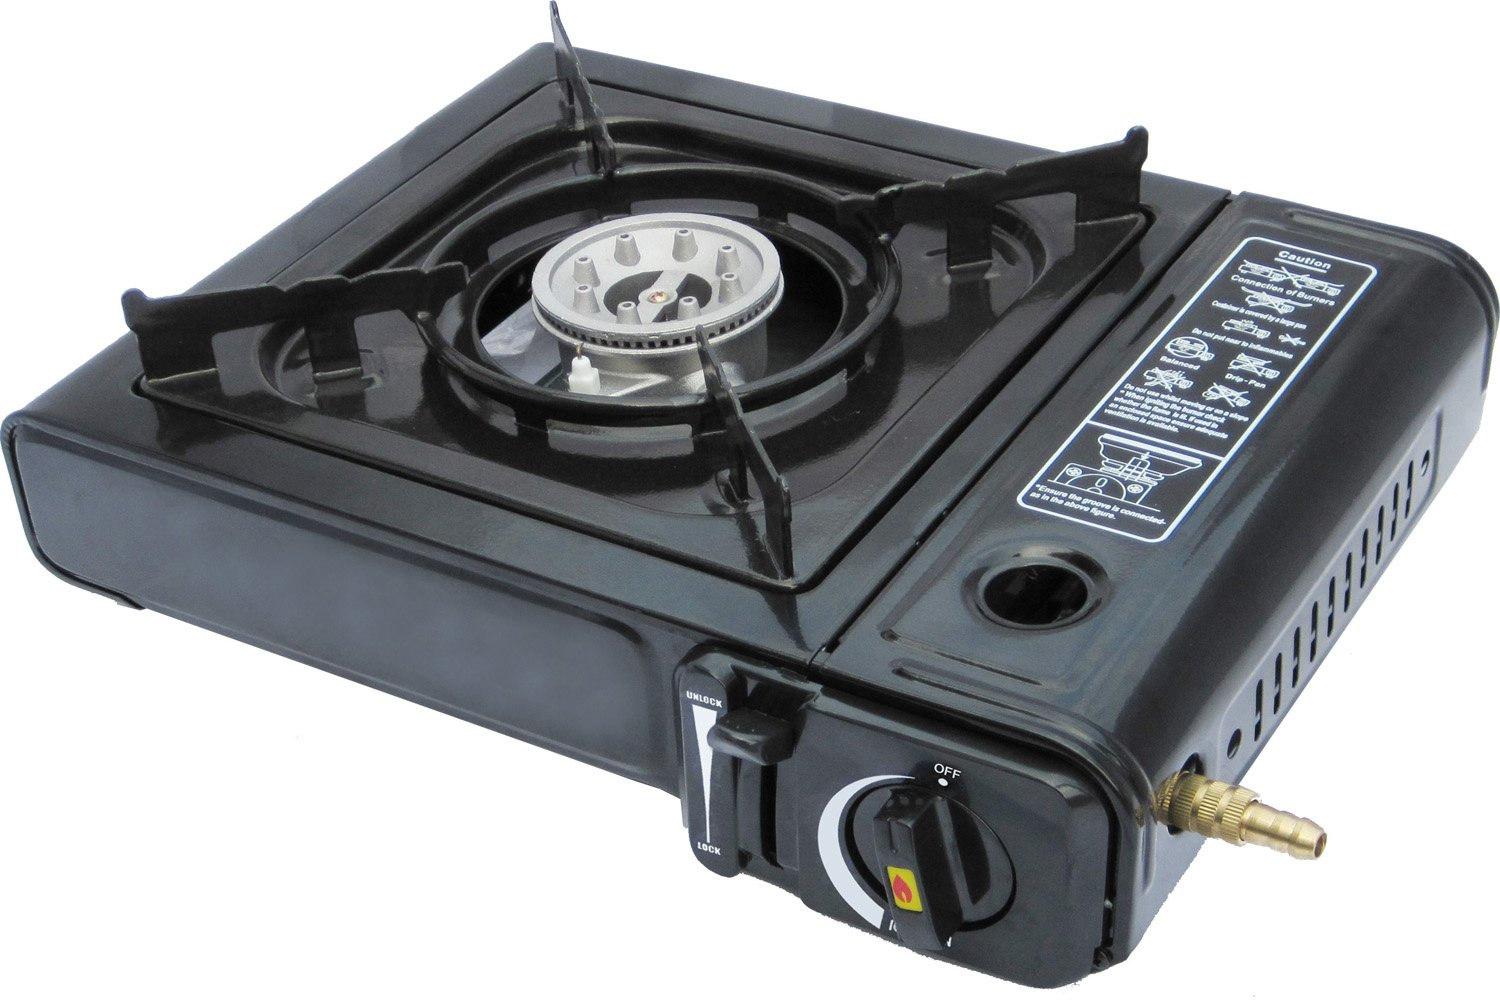 Amazon.com : Portable Stove Gas Cooker 13